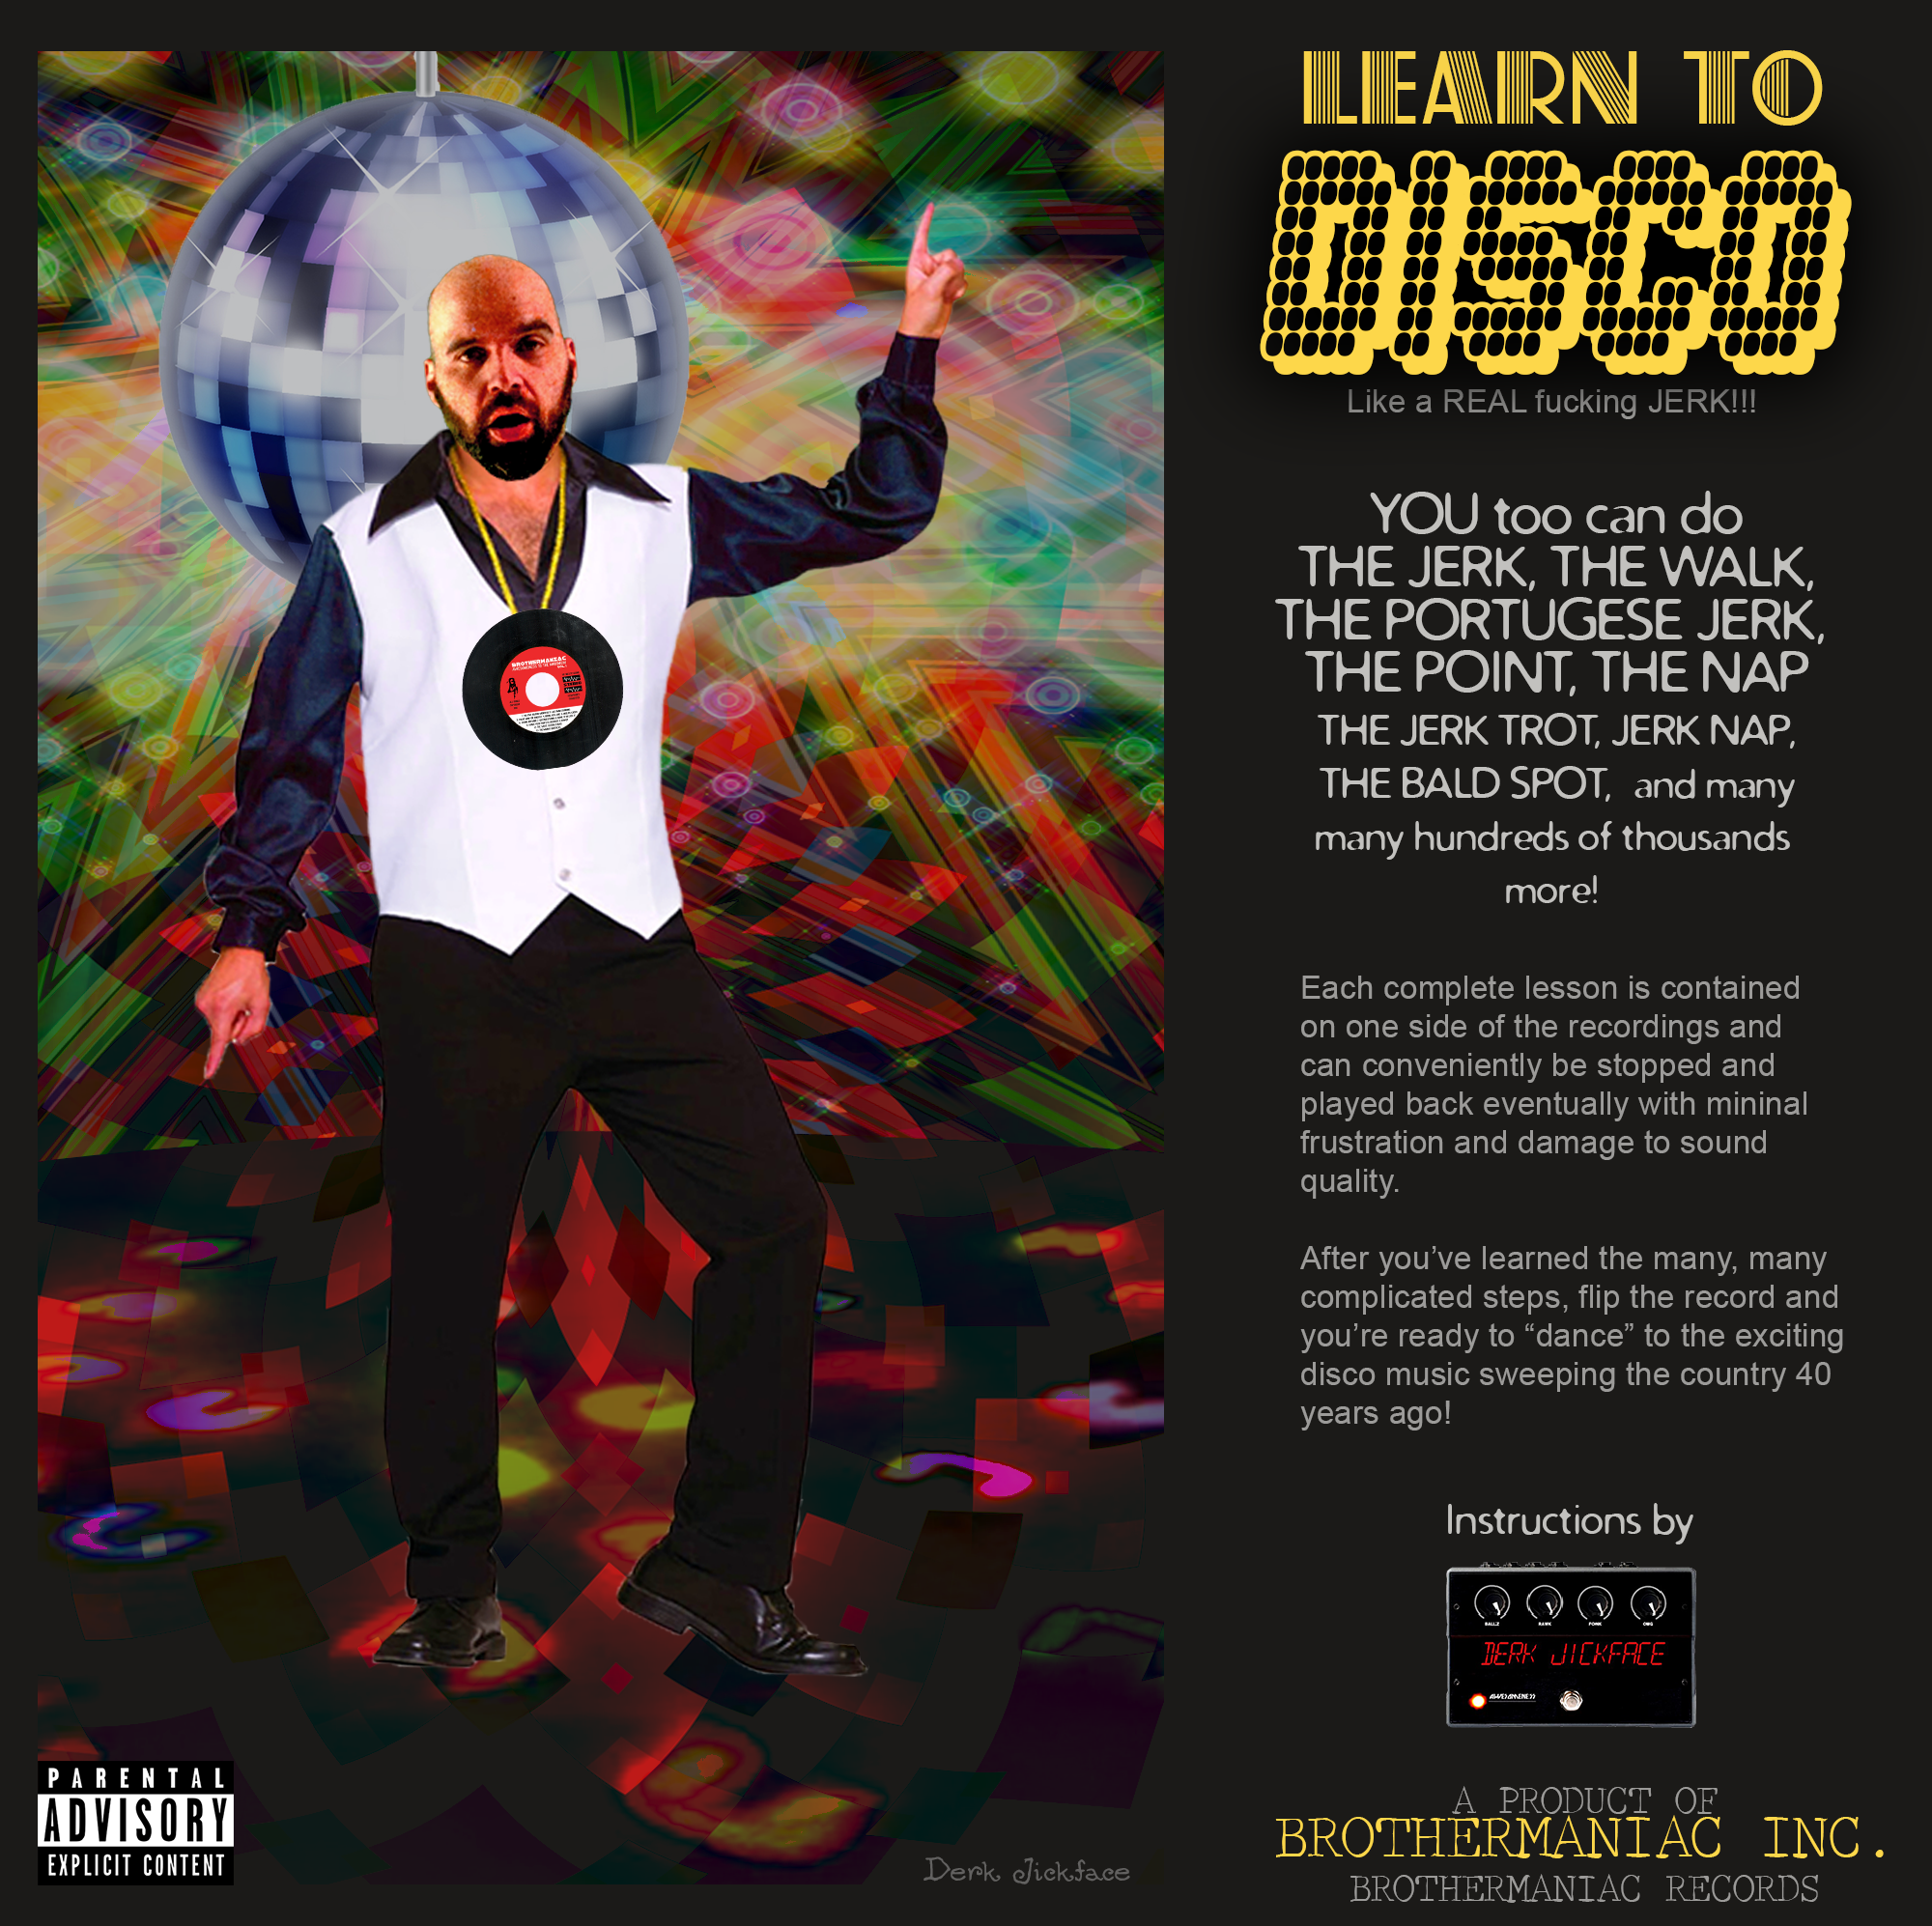 Learn To Disco Record Album Art